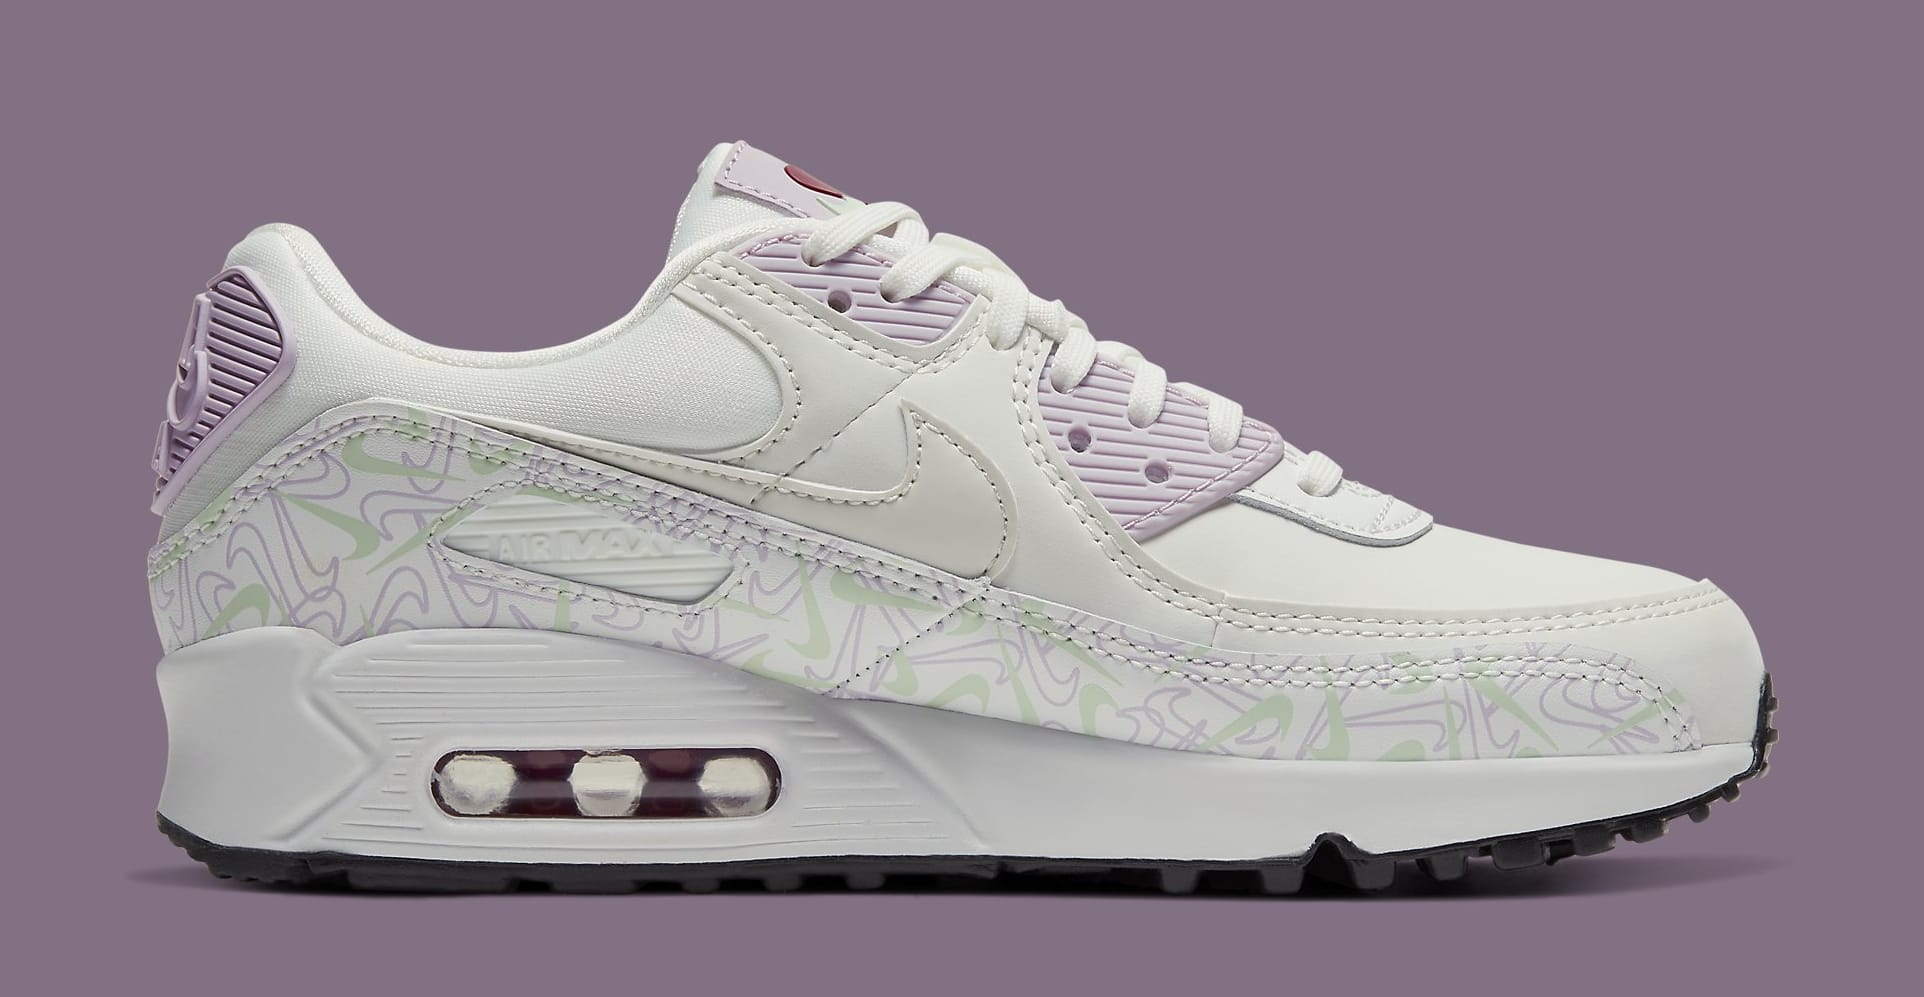 nike-air-max-90-womens-valentines-day-ci7395-100-medial